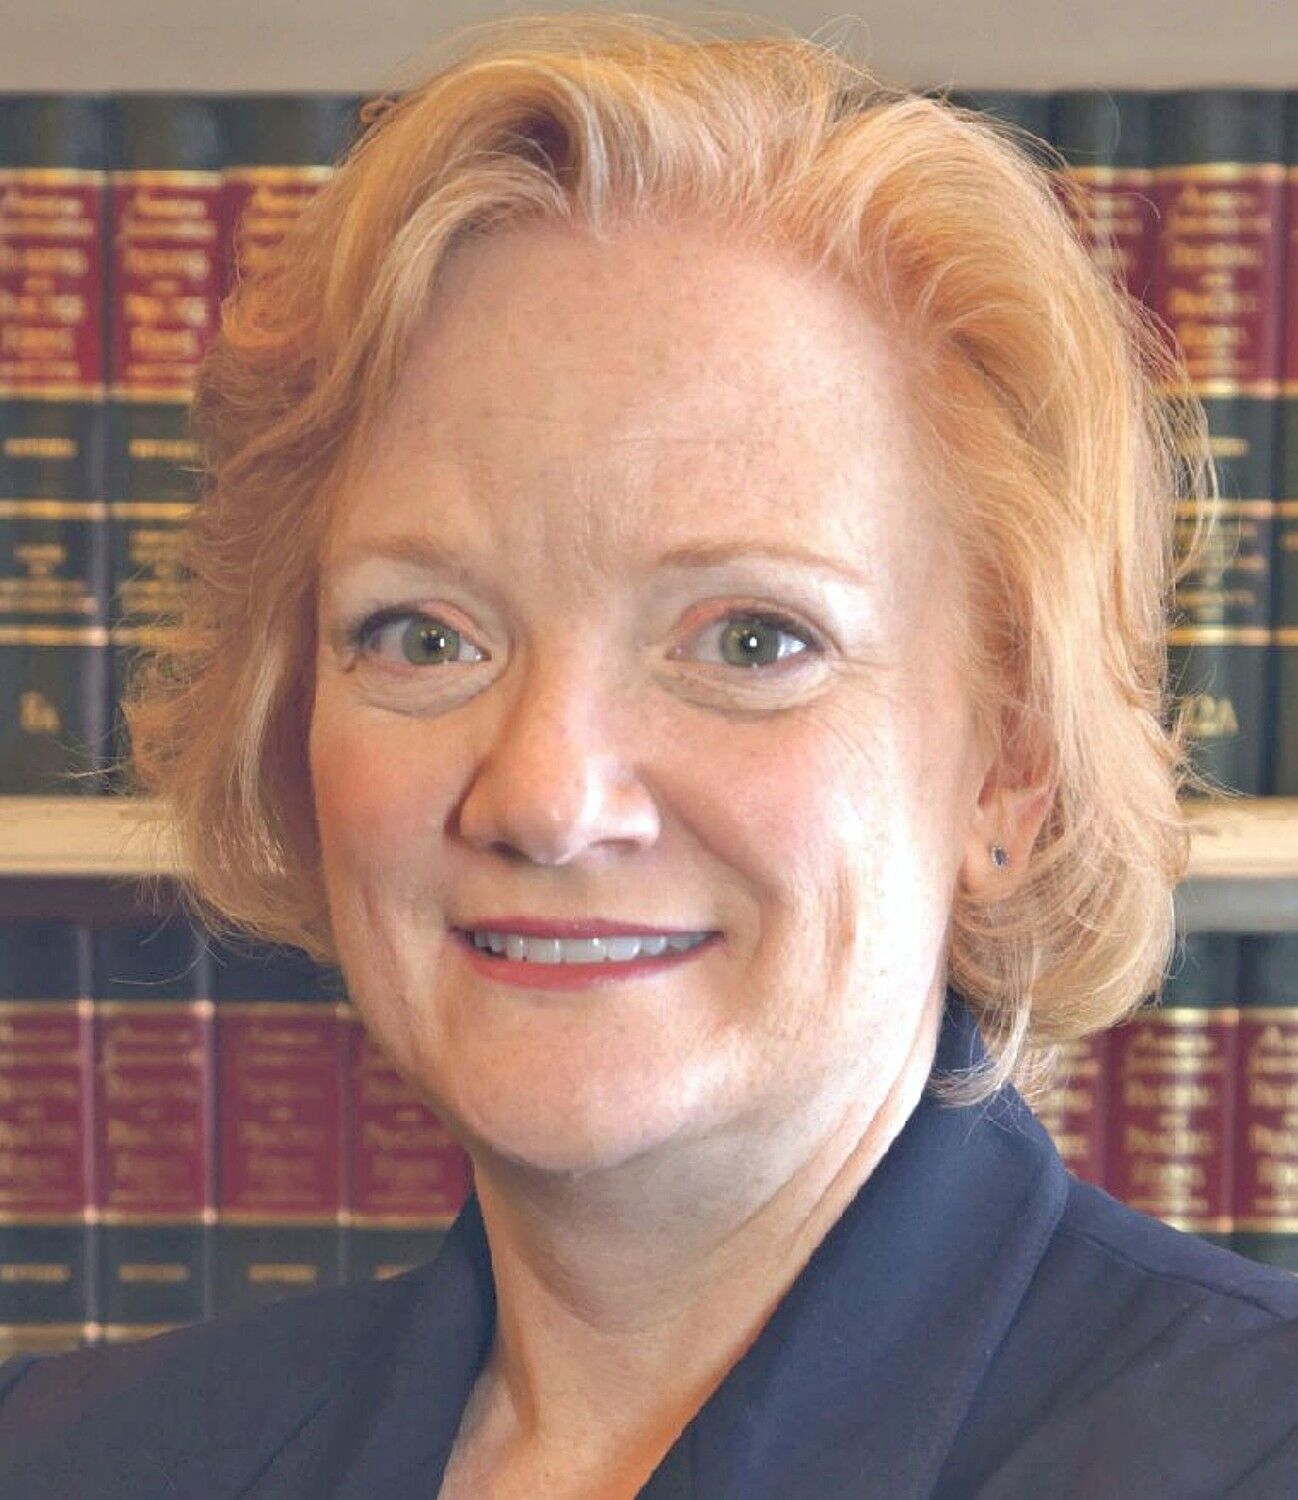 State's attorney candidate rips incumbent